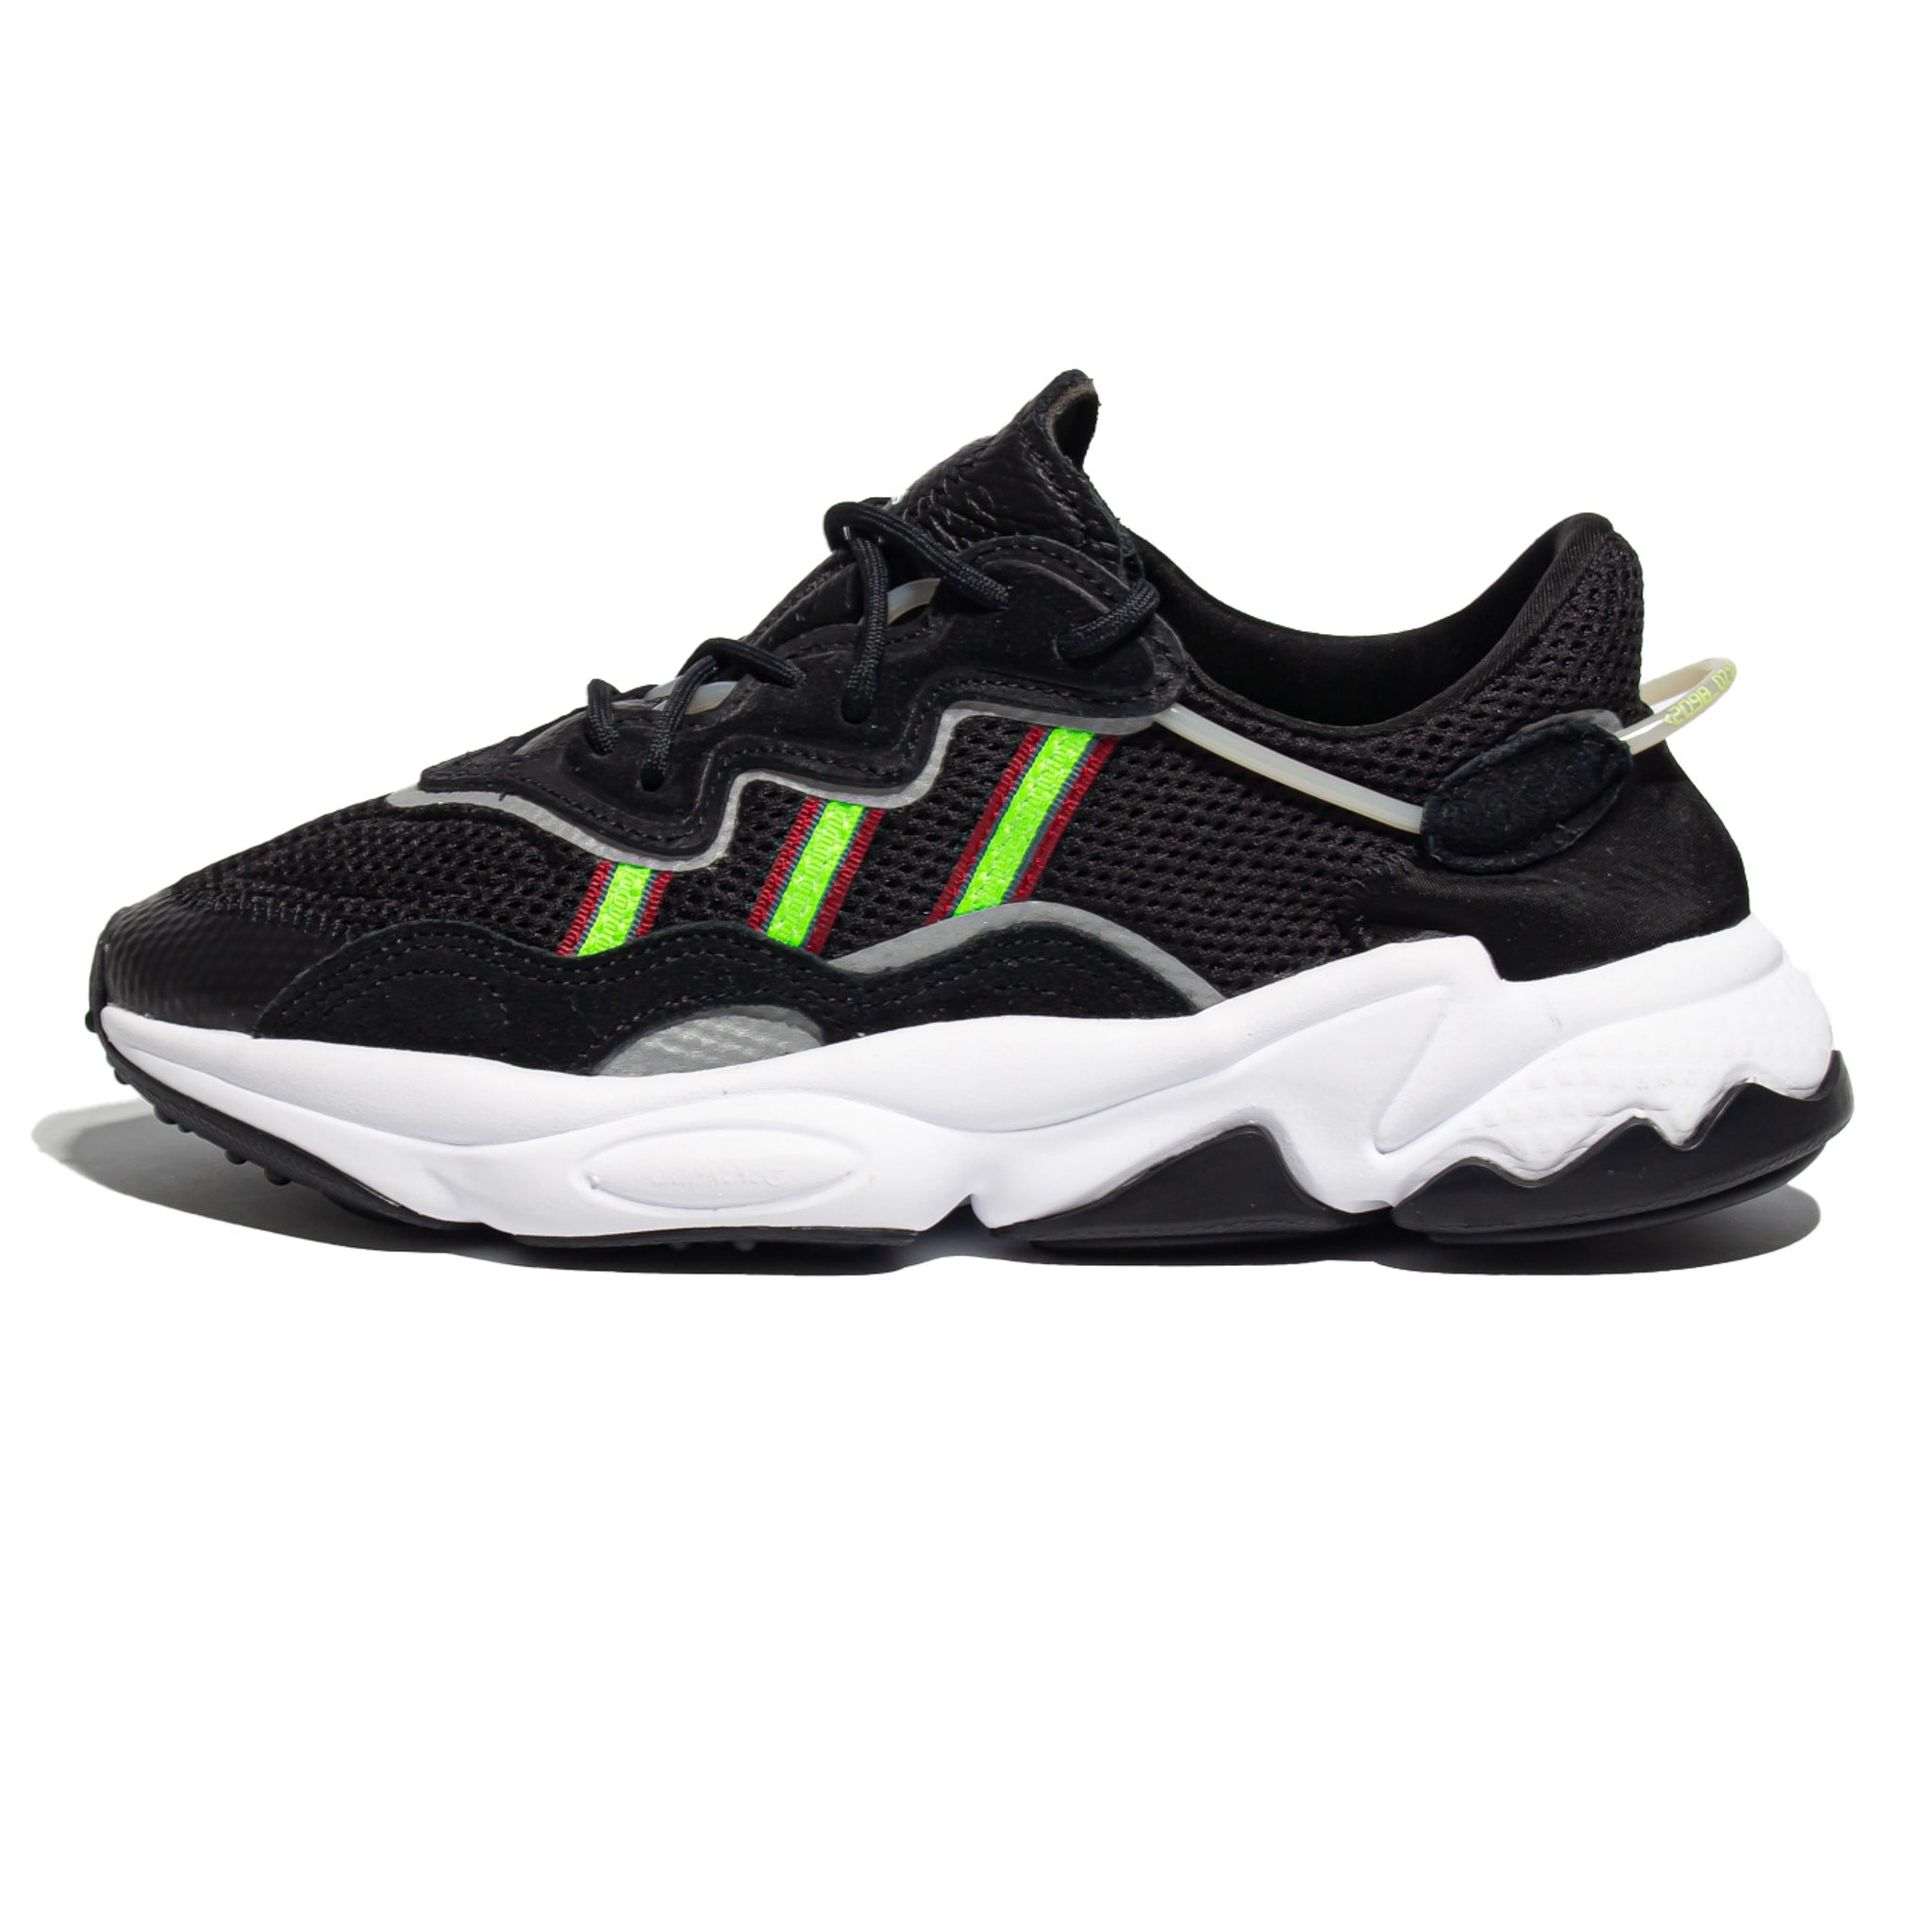 ADIDAS Ozweego Core Black/Solar Green